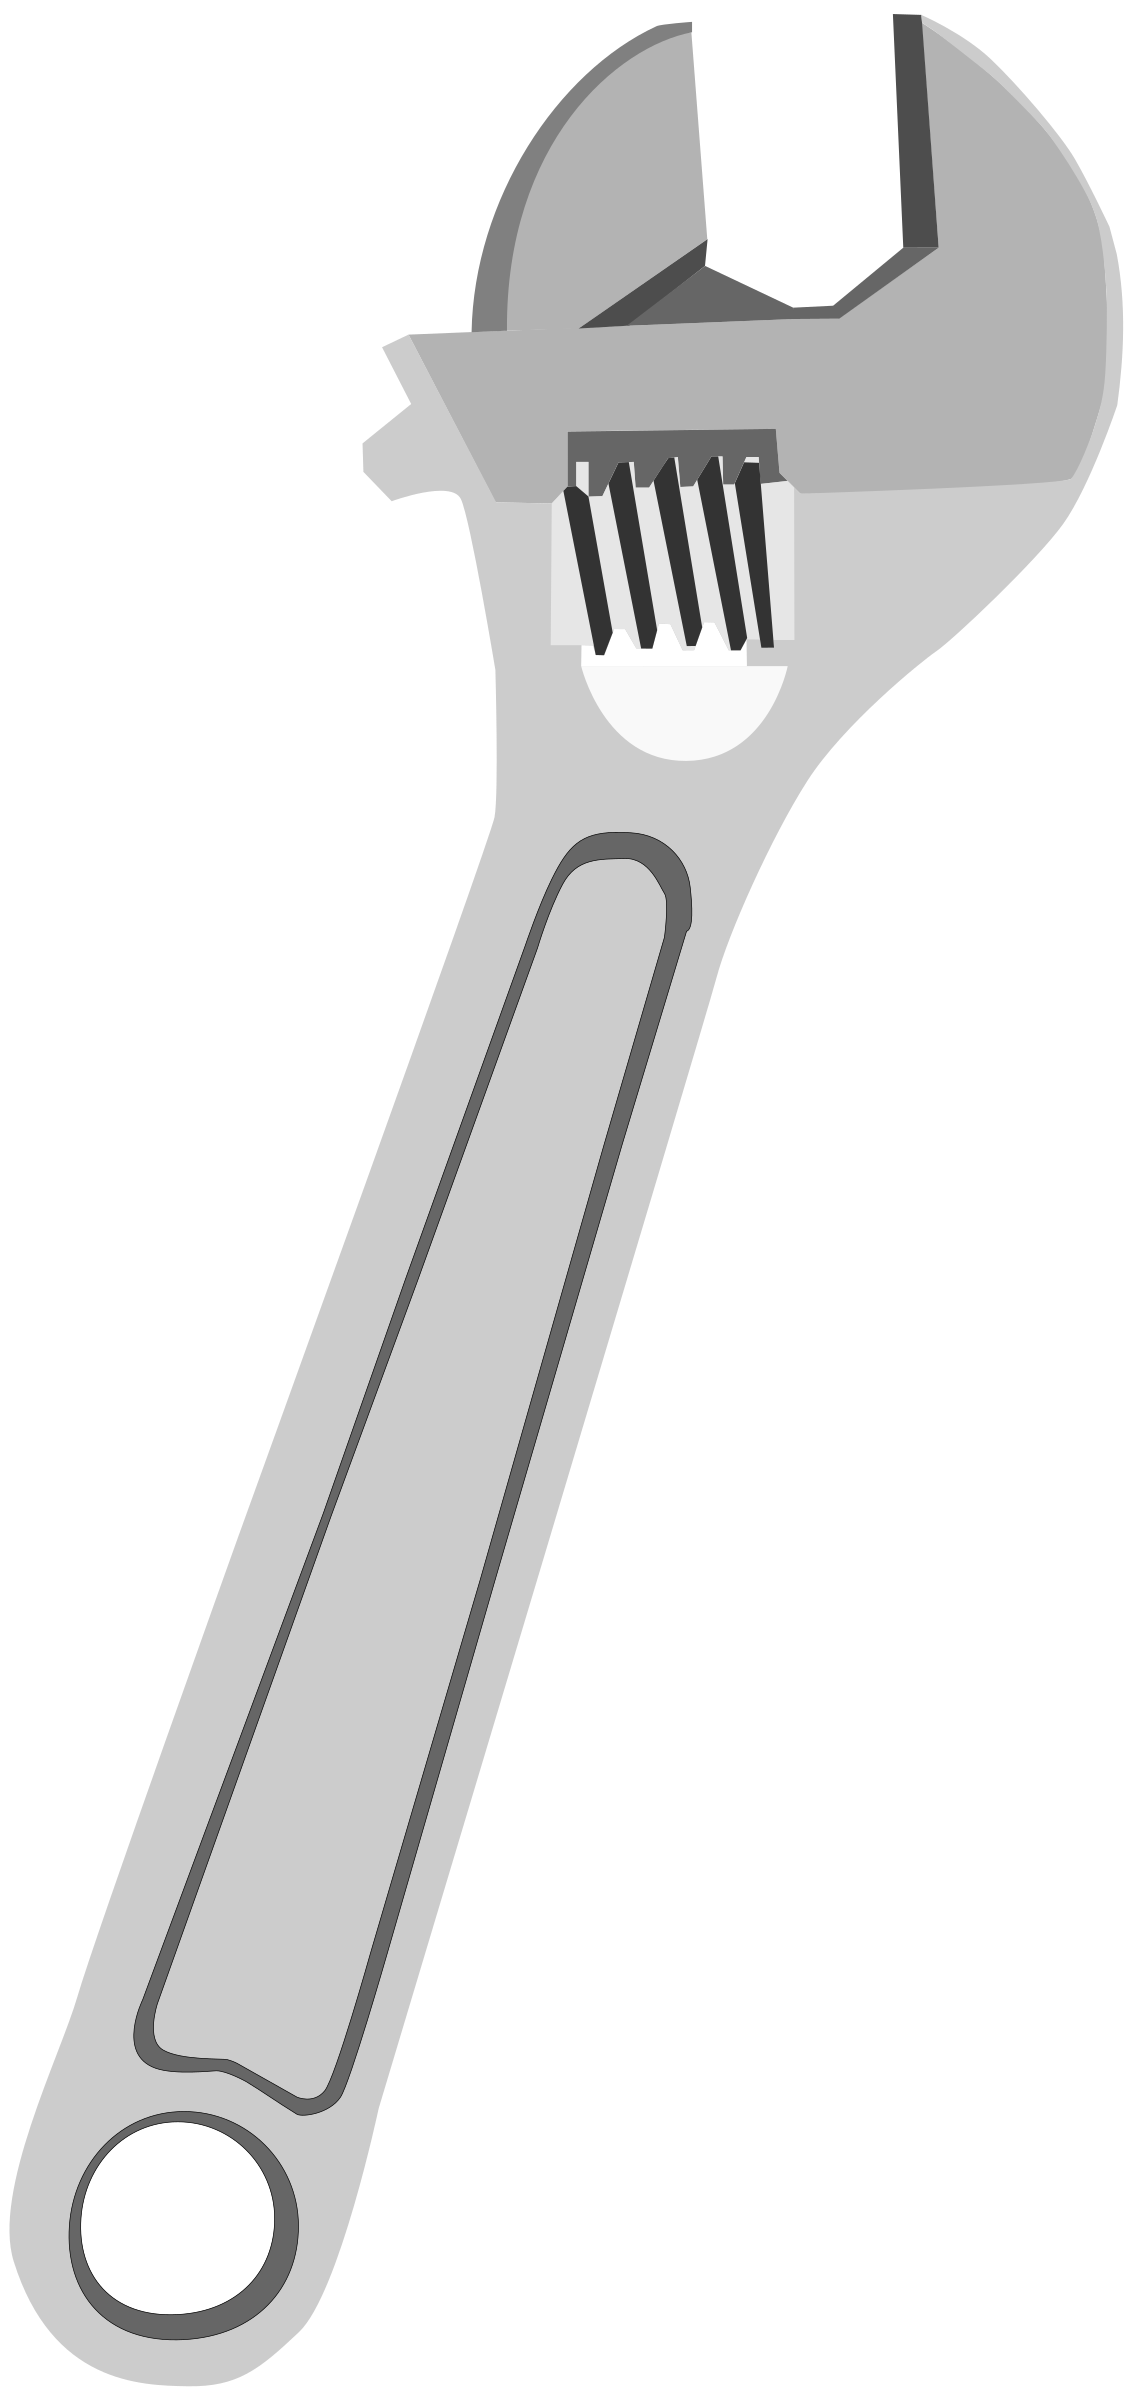 vector black and white download Crescent wrench clipart. Adjustable big image png